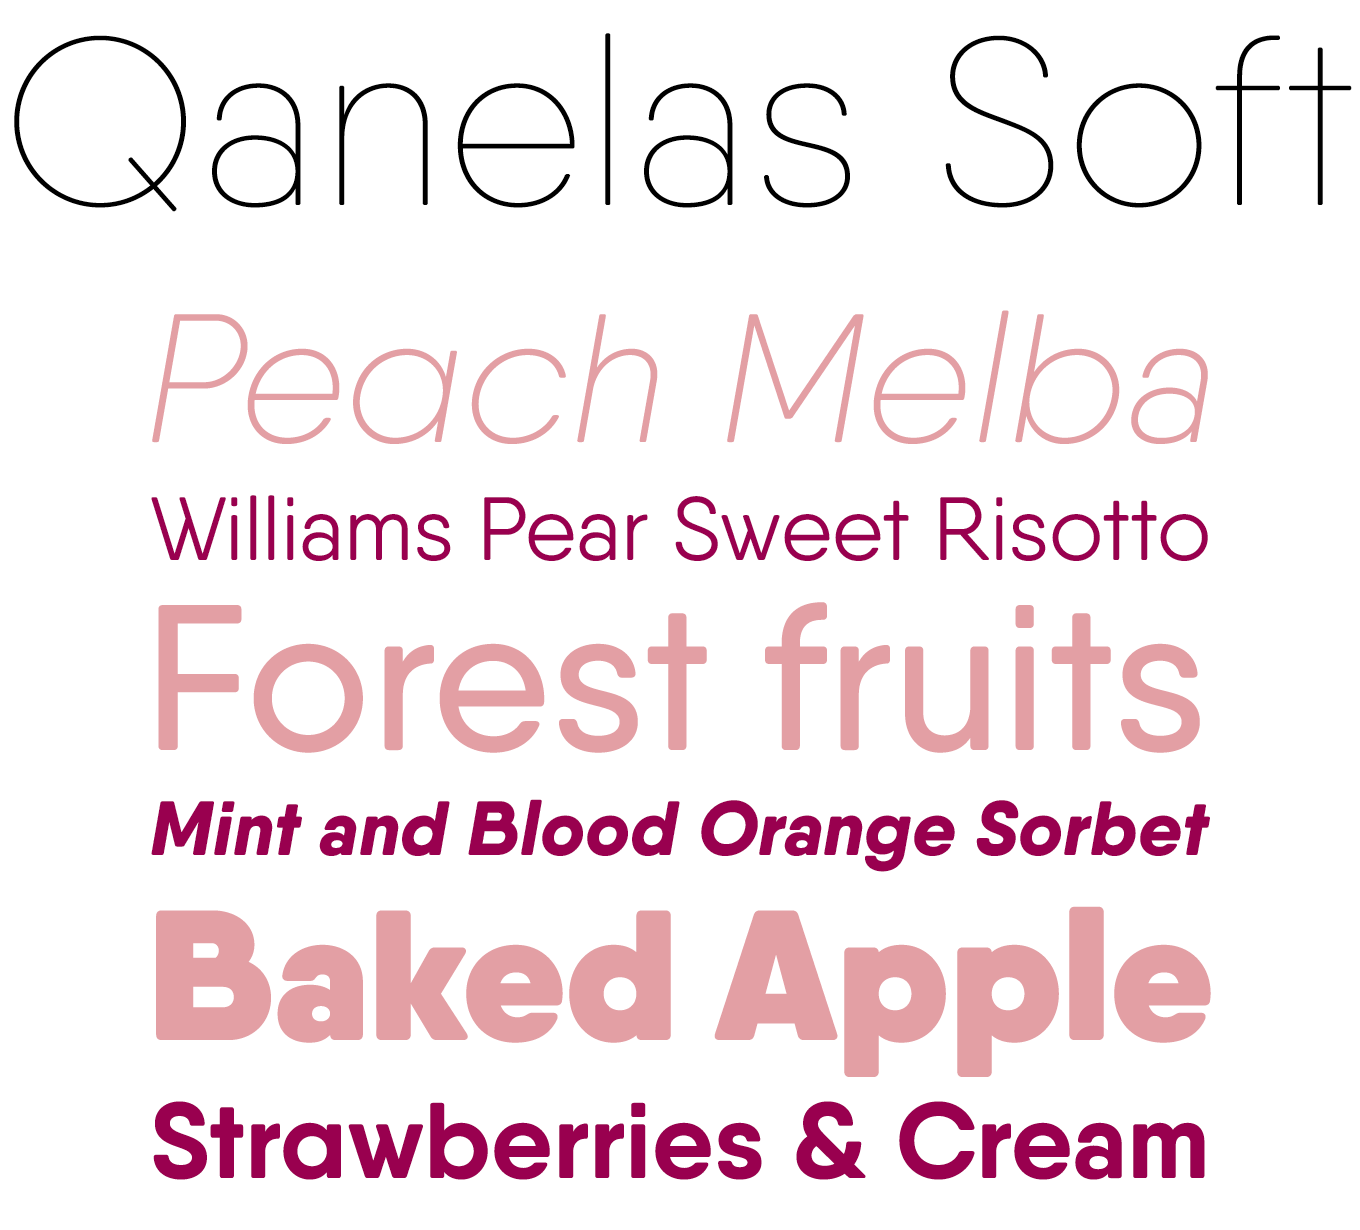 MyFonts: Rising Stars, March 2016